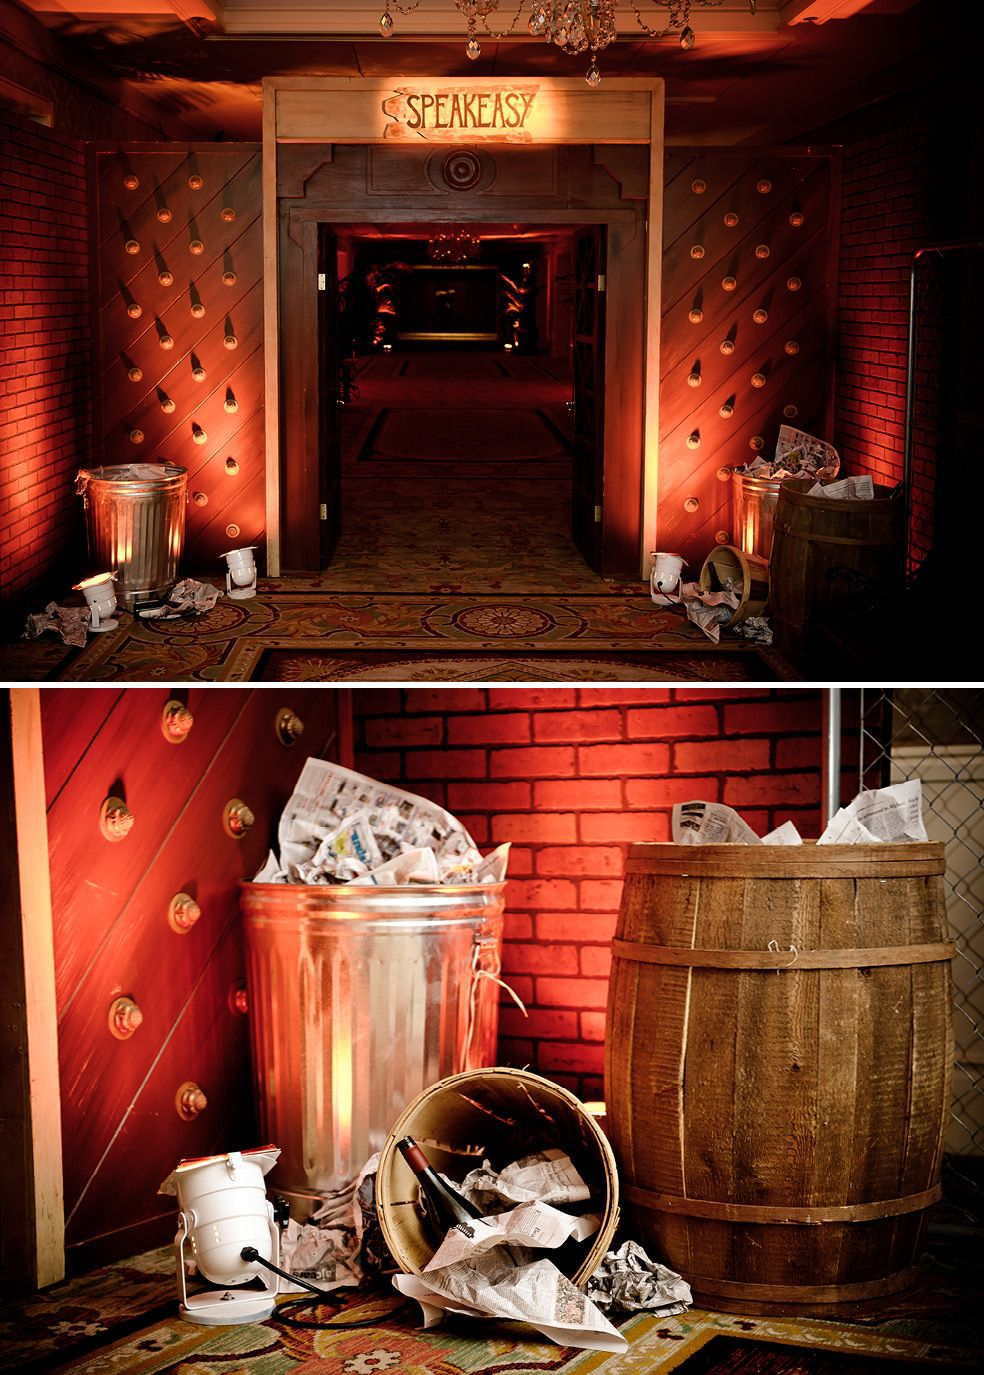 Speakeasy retirement party party ideas pinterest for 1920 party decoration ideas